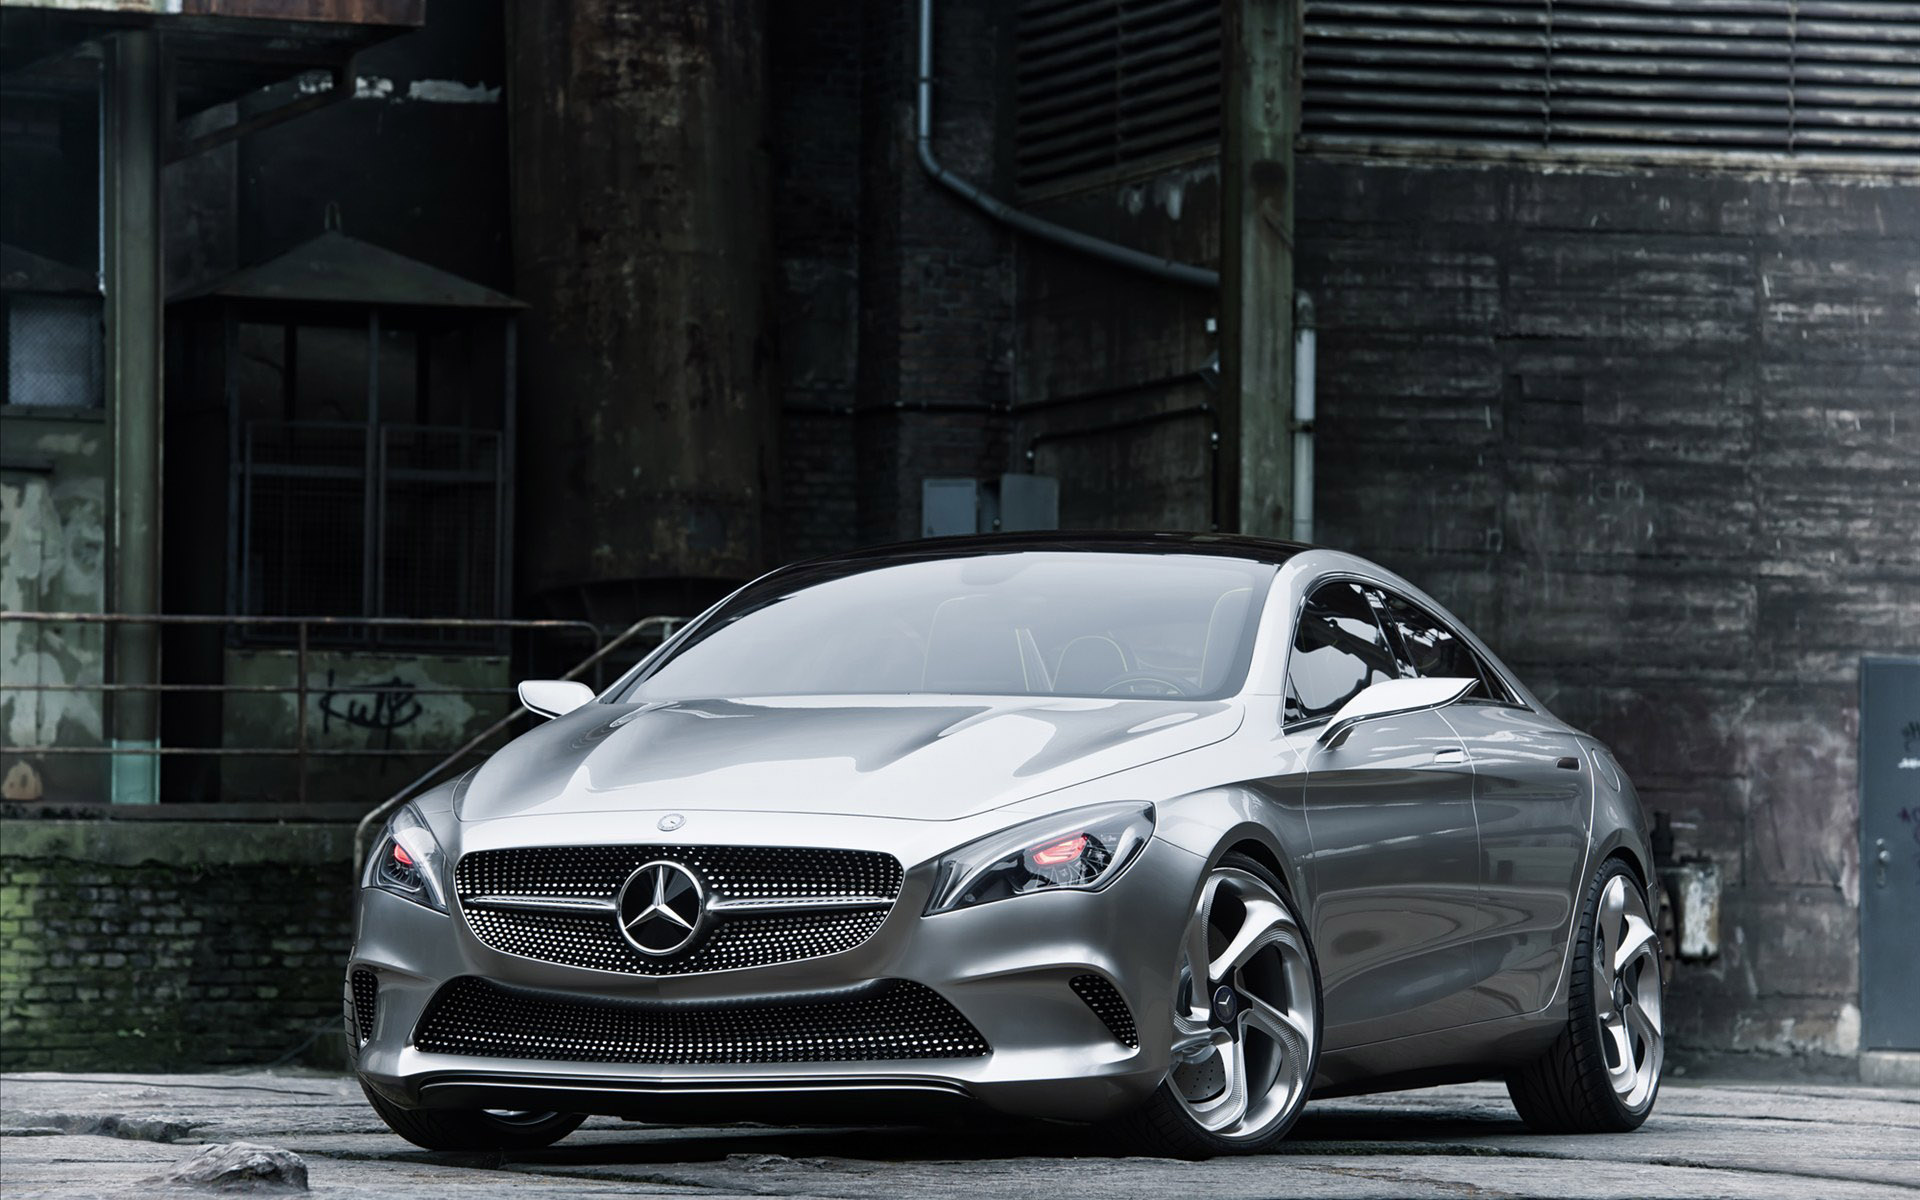 The Benz Coupe concept car 31134